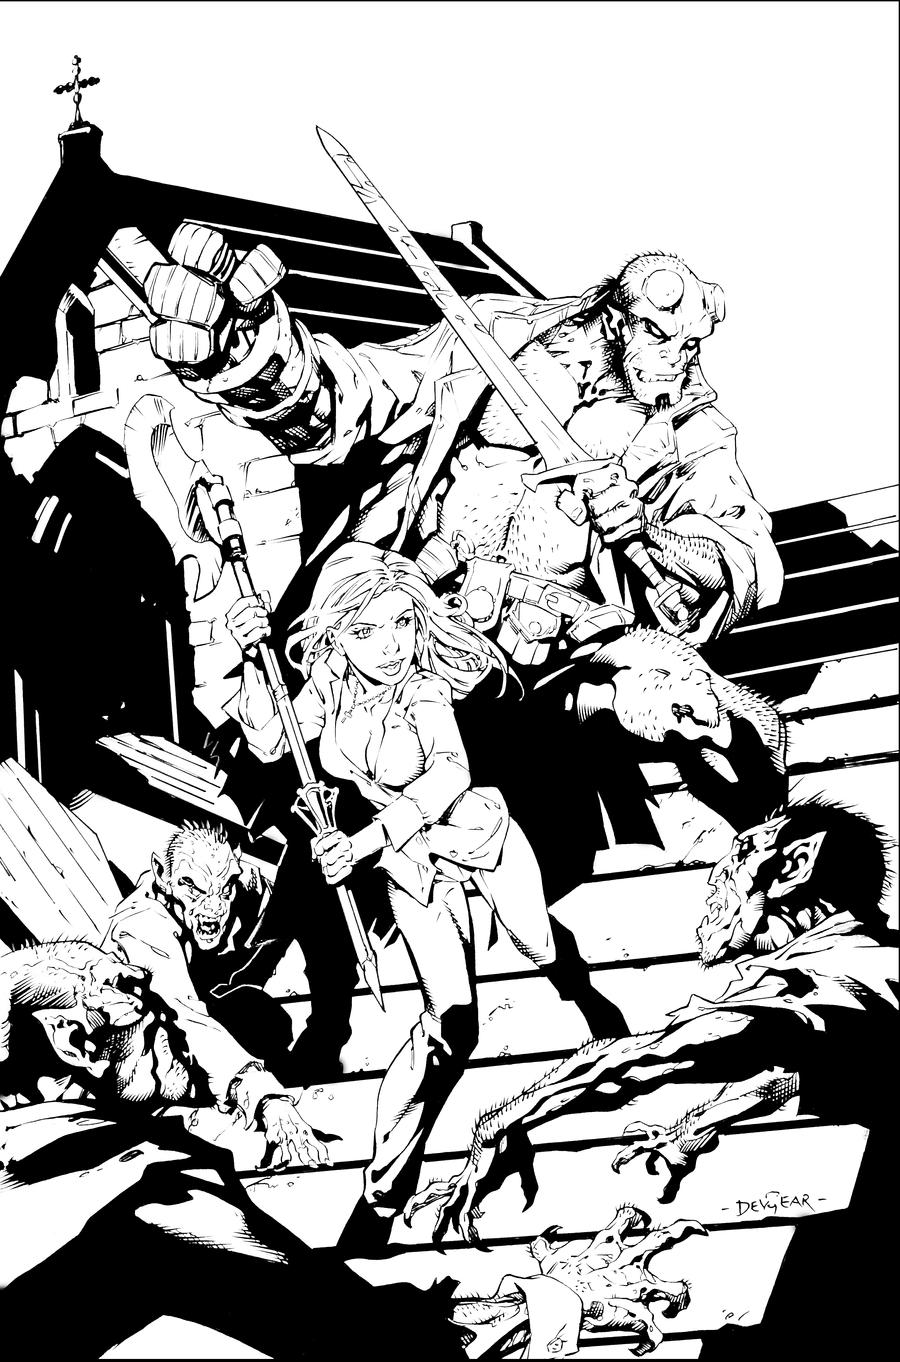 Coloring Pages Hellboy Coloring Pages buffy and hellboy inks by devgear on deviantart devgear